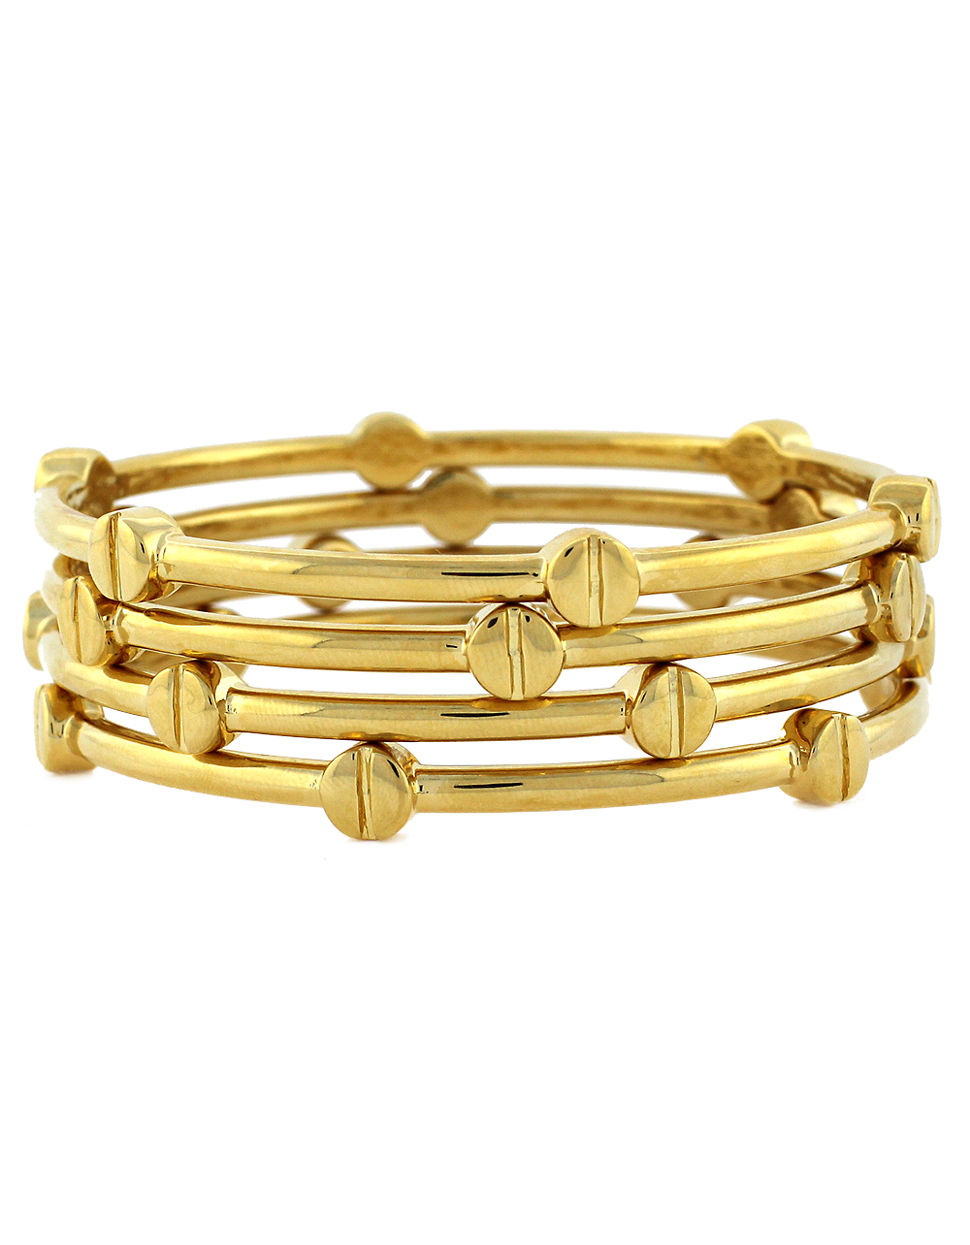 threaded love accents featuring throughout cartier and gold designer closures bracelet white pin nail head screw